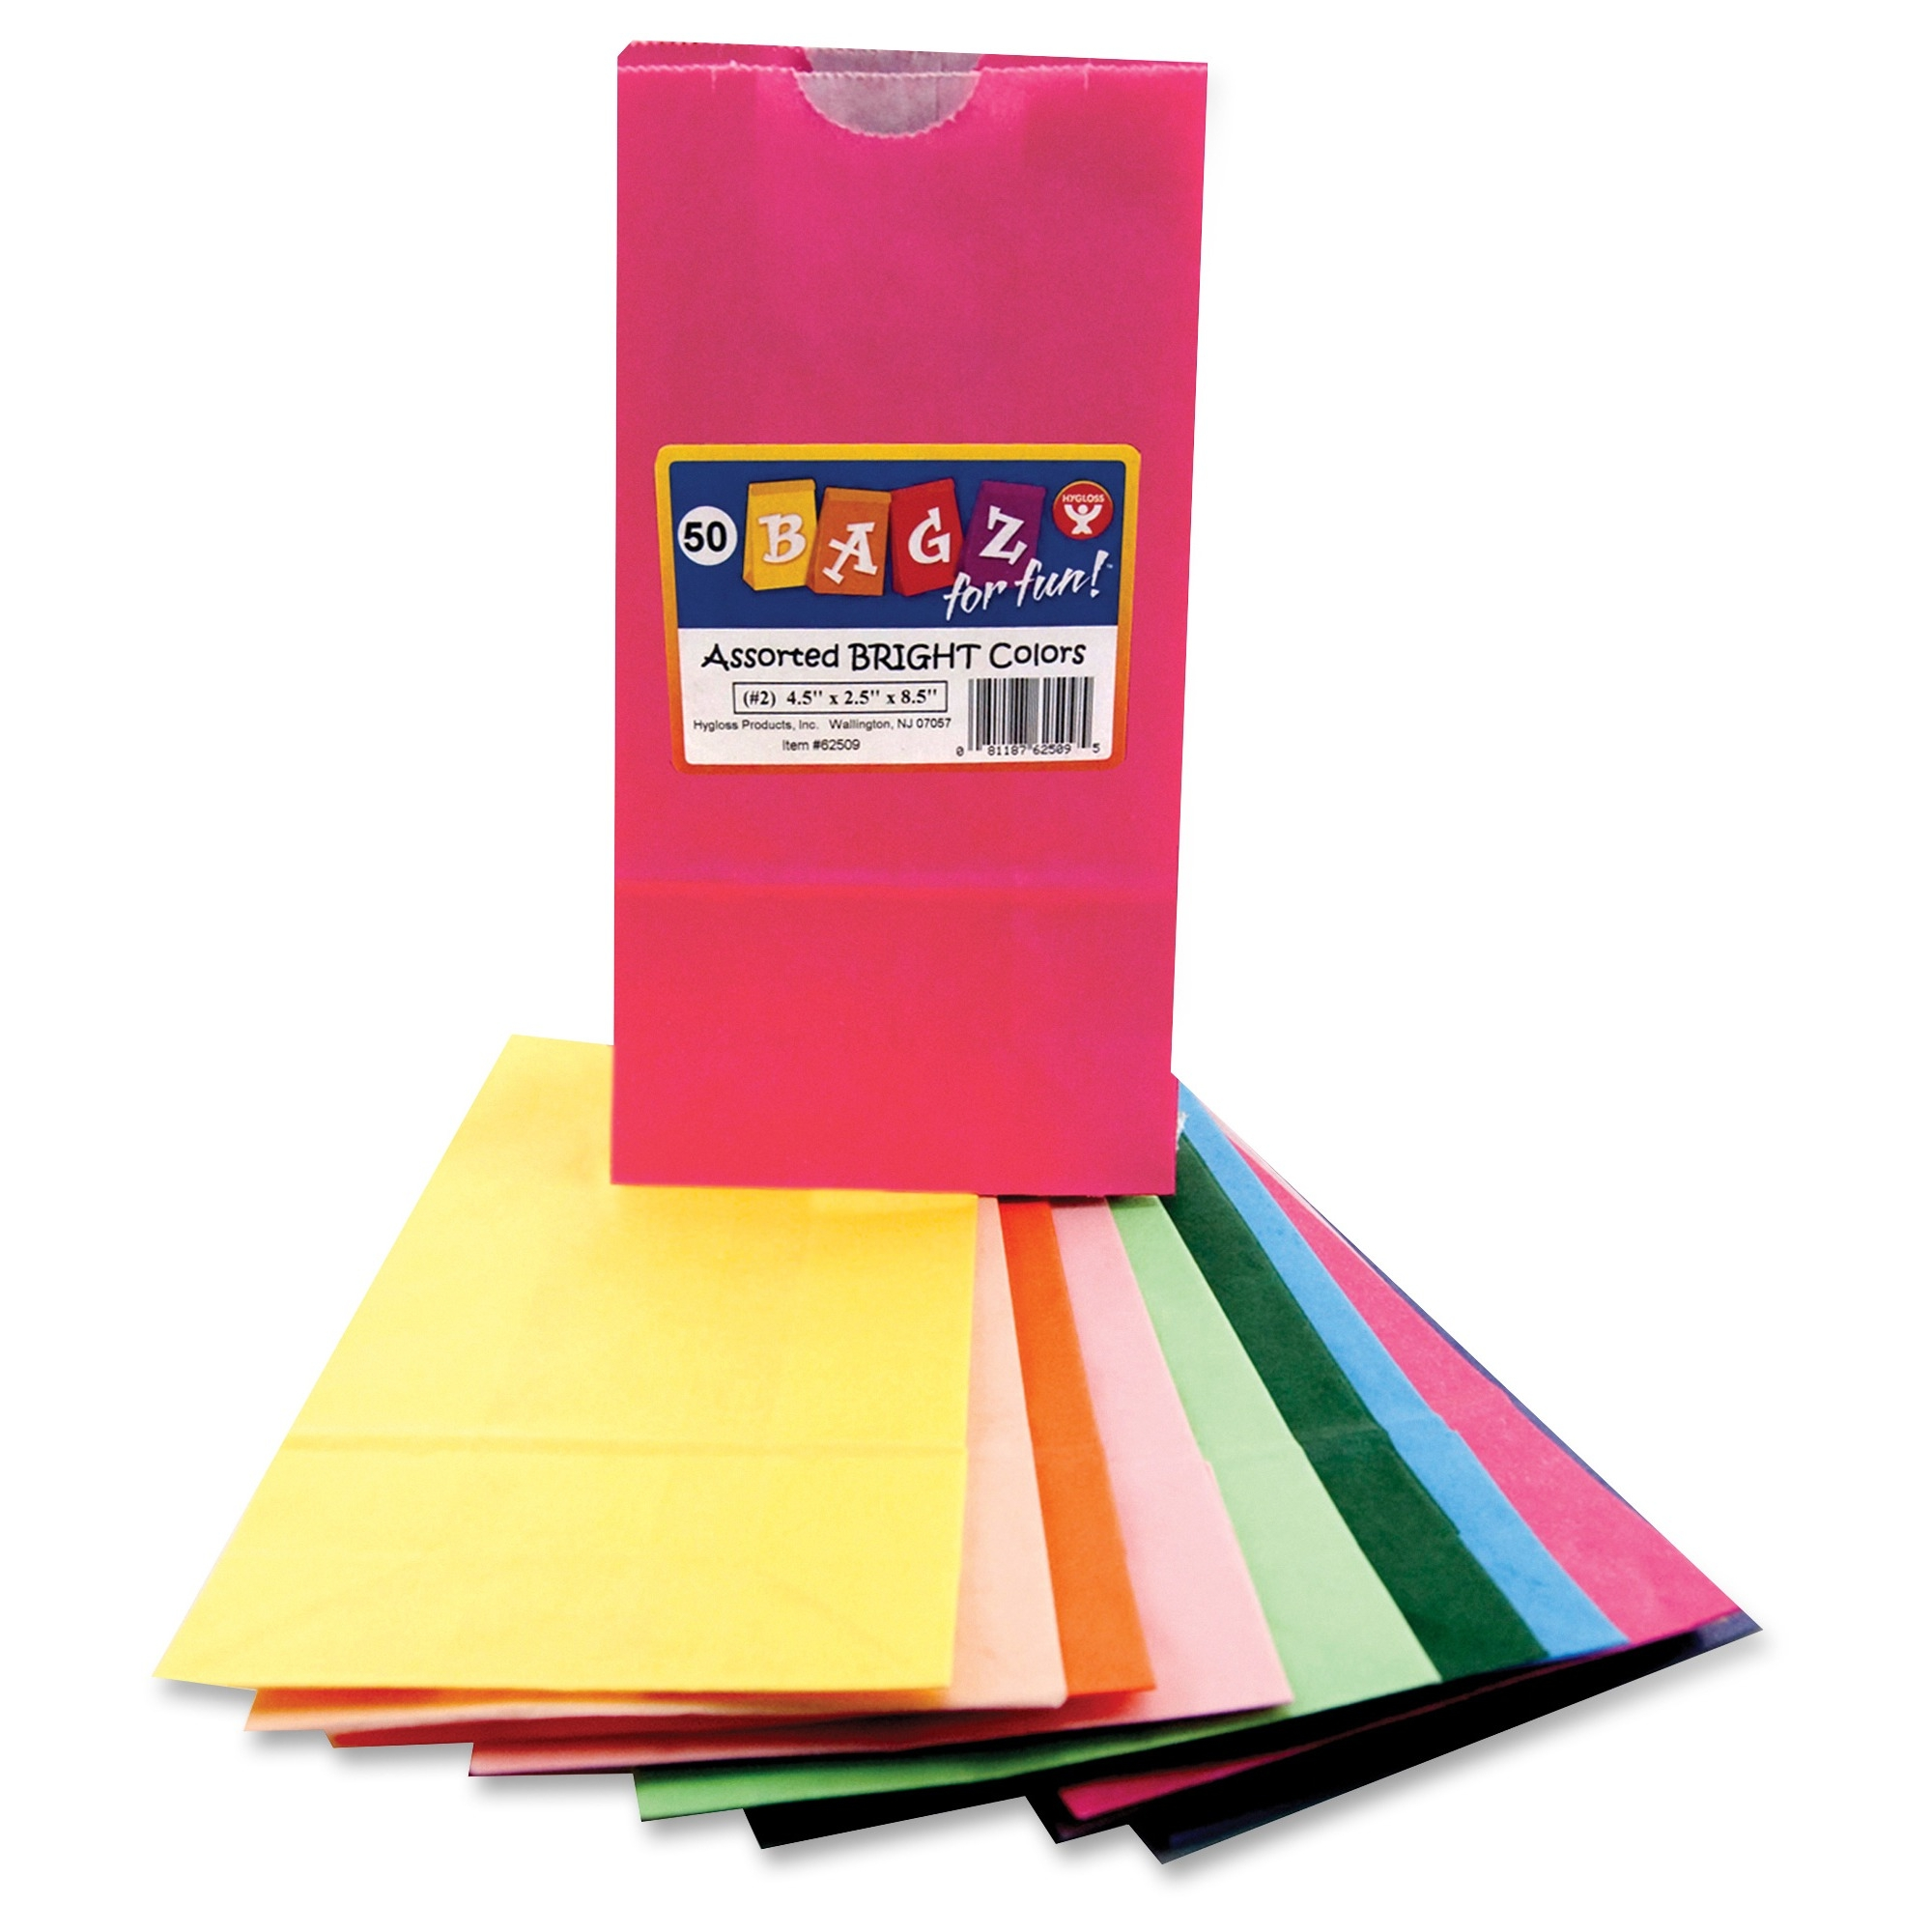 "Hygloss Bright Color Bagz - 50 Piece[s] - 8.5"" X 4.5"" X 2.5"" - 1 Pack - Assorted - Paper (hyx-62509)"